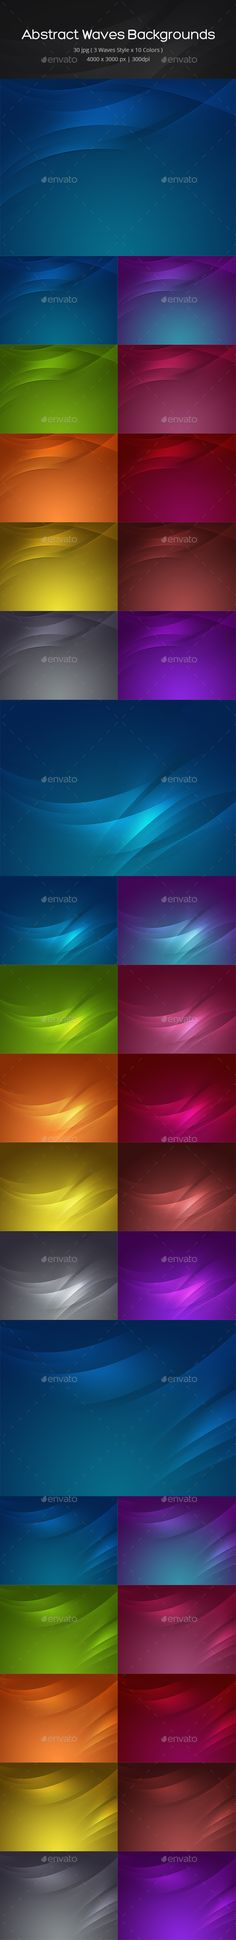 30 Abstract Waves Backgrounds by ghssalem This pack includes 30 Abstract Waves Backgrounds (3 Waves style x 10 colors). 4000脳3000 px (300 dpi)